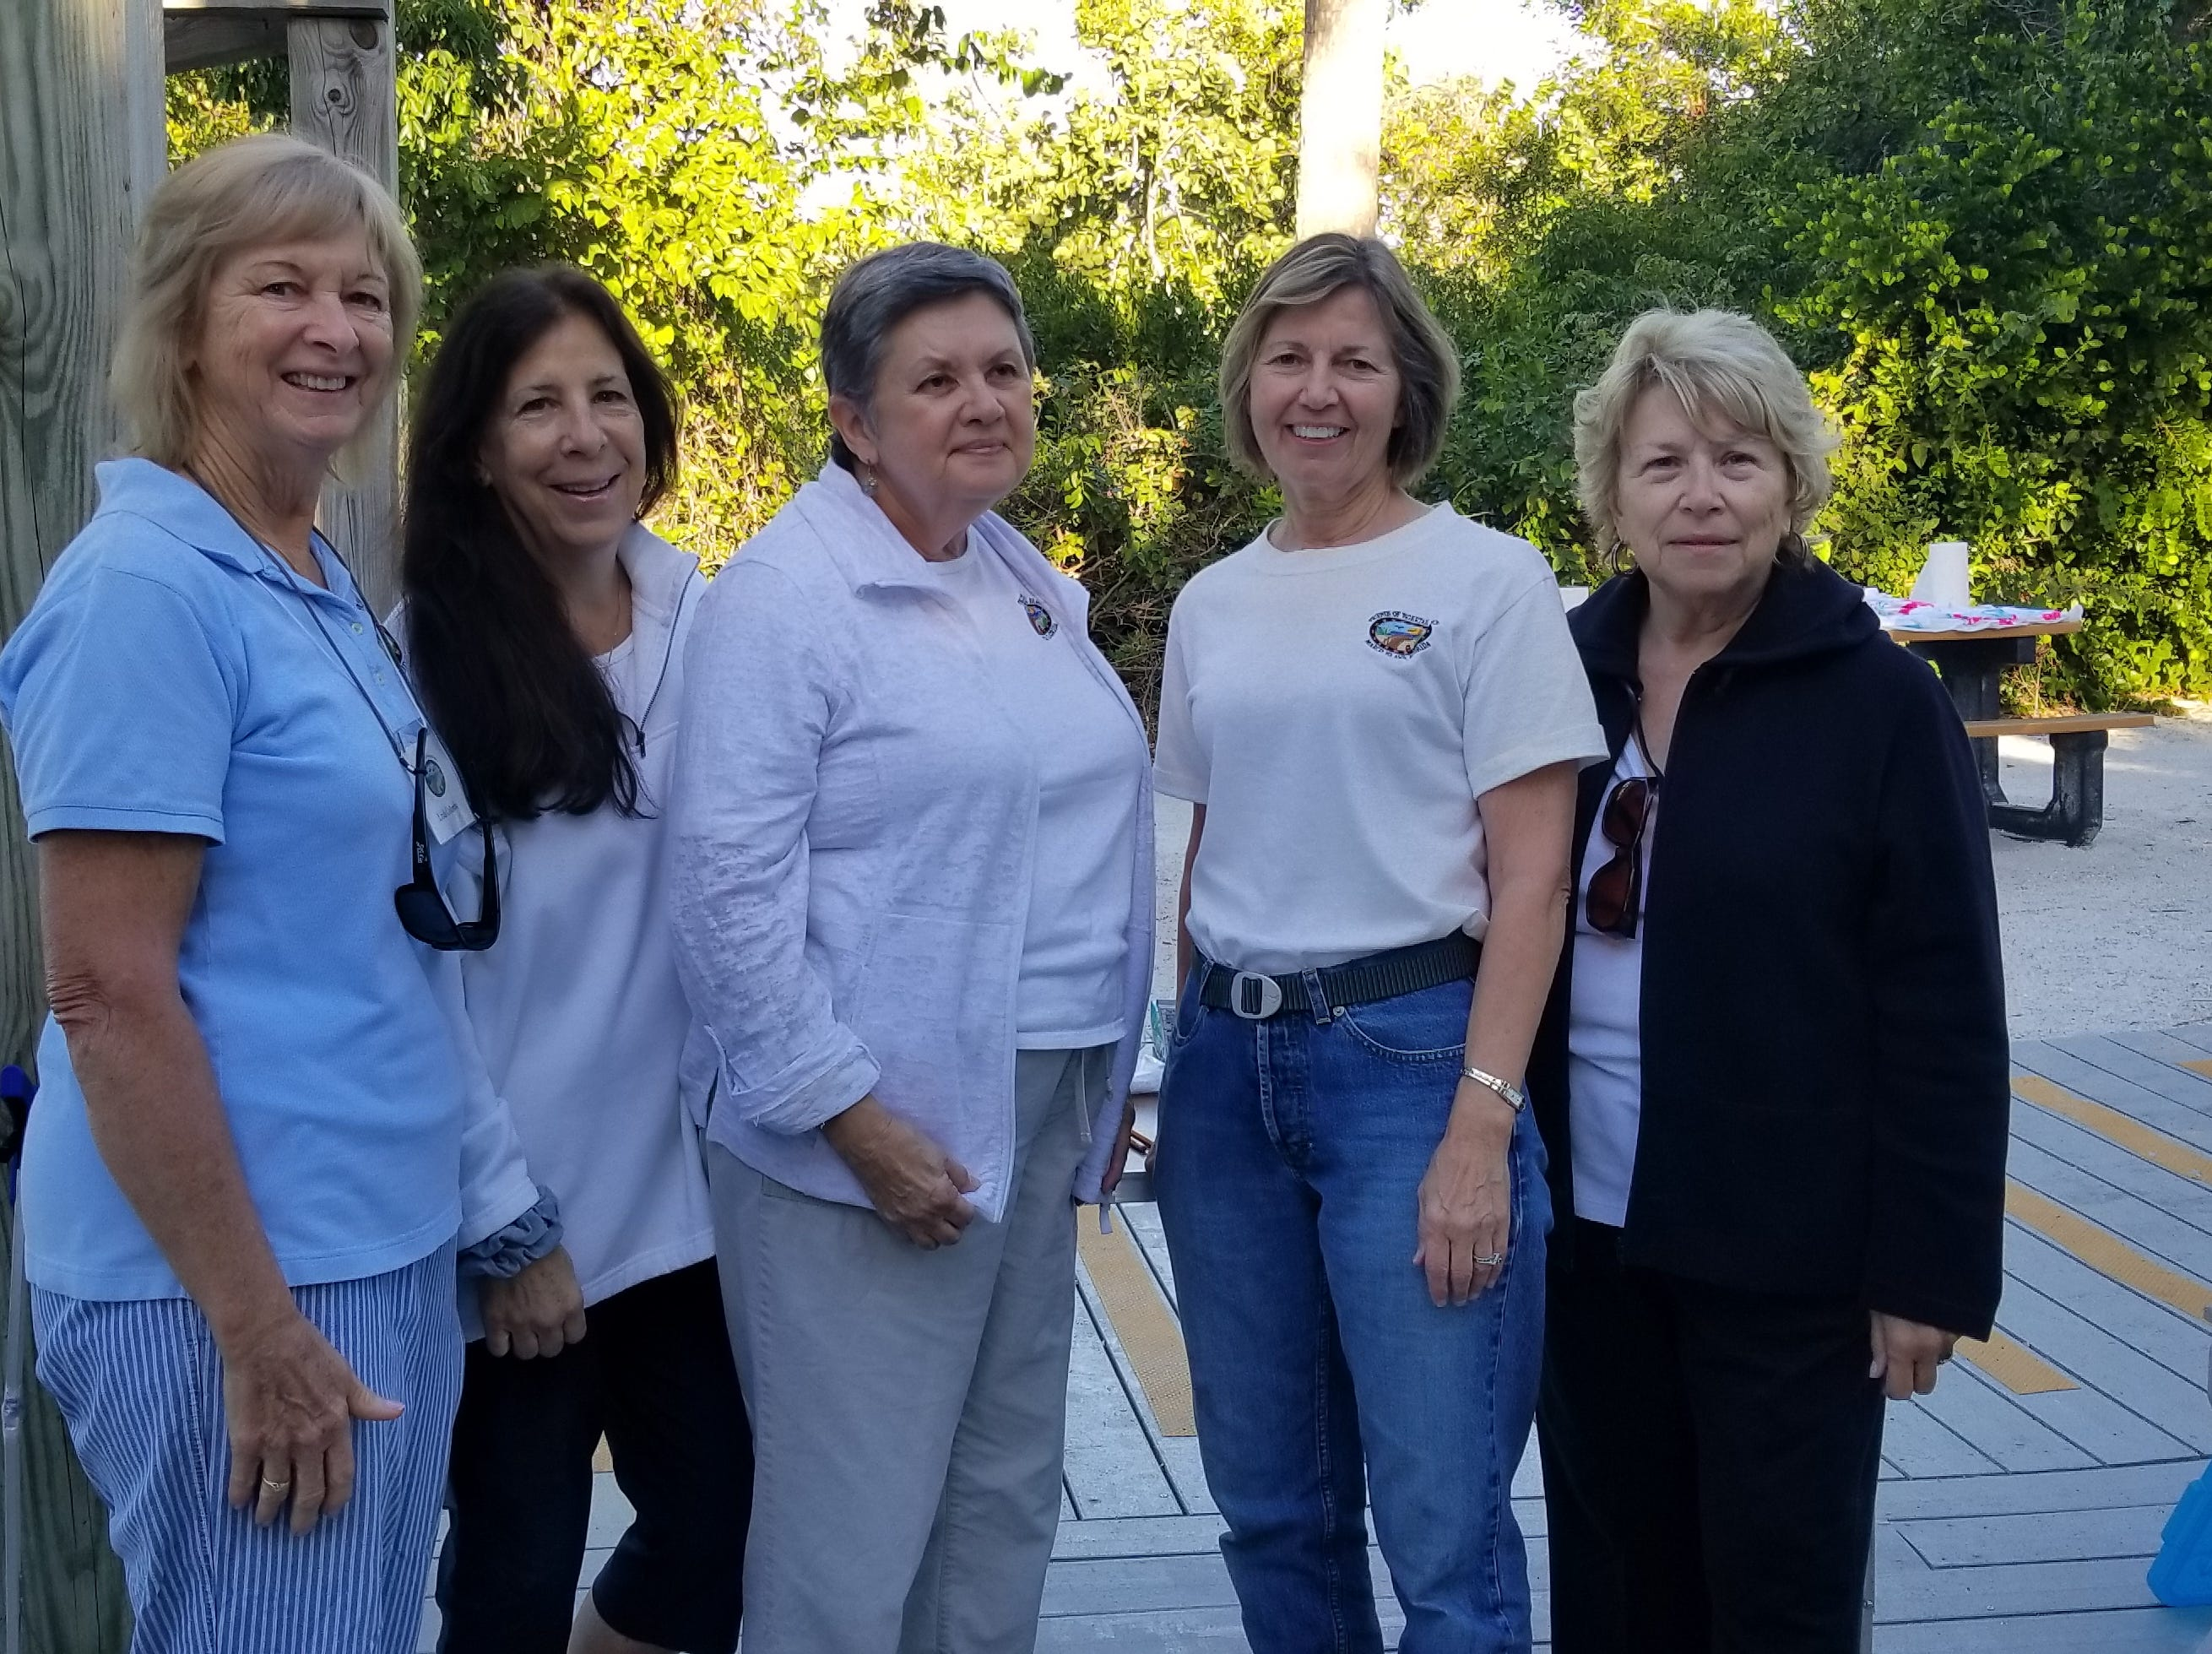 Members of Friends of Tigertail Board: Linda Colombo, Susan Lagrotta, Gwyn Goodman, Allie Delventhal and Mary Ann Maniace.